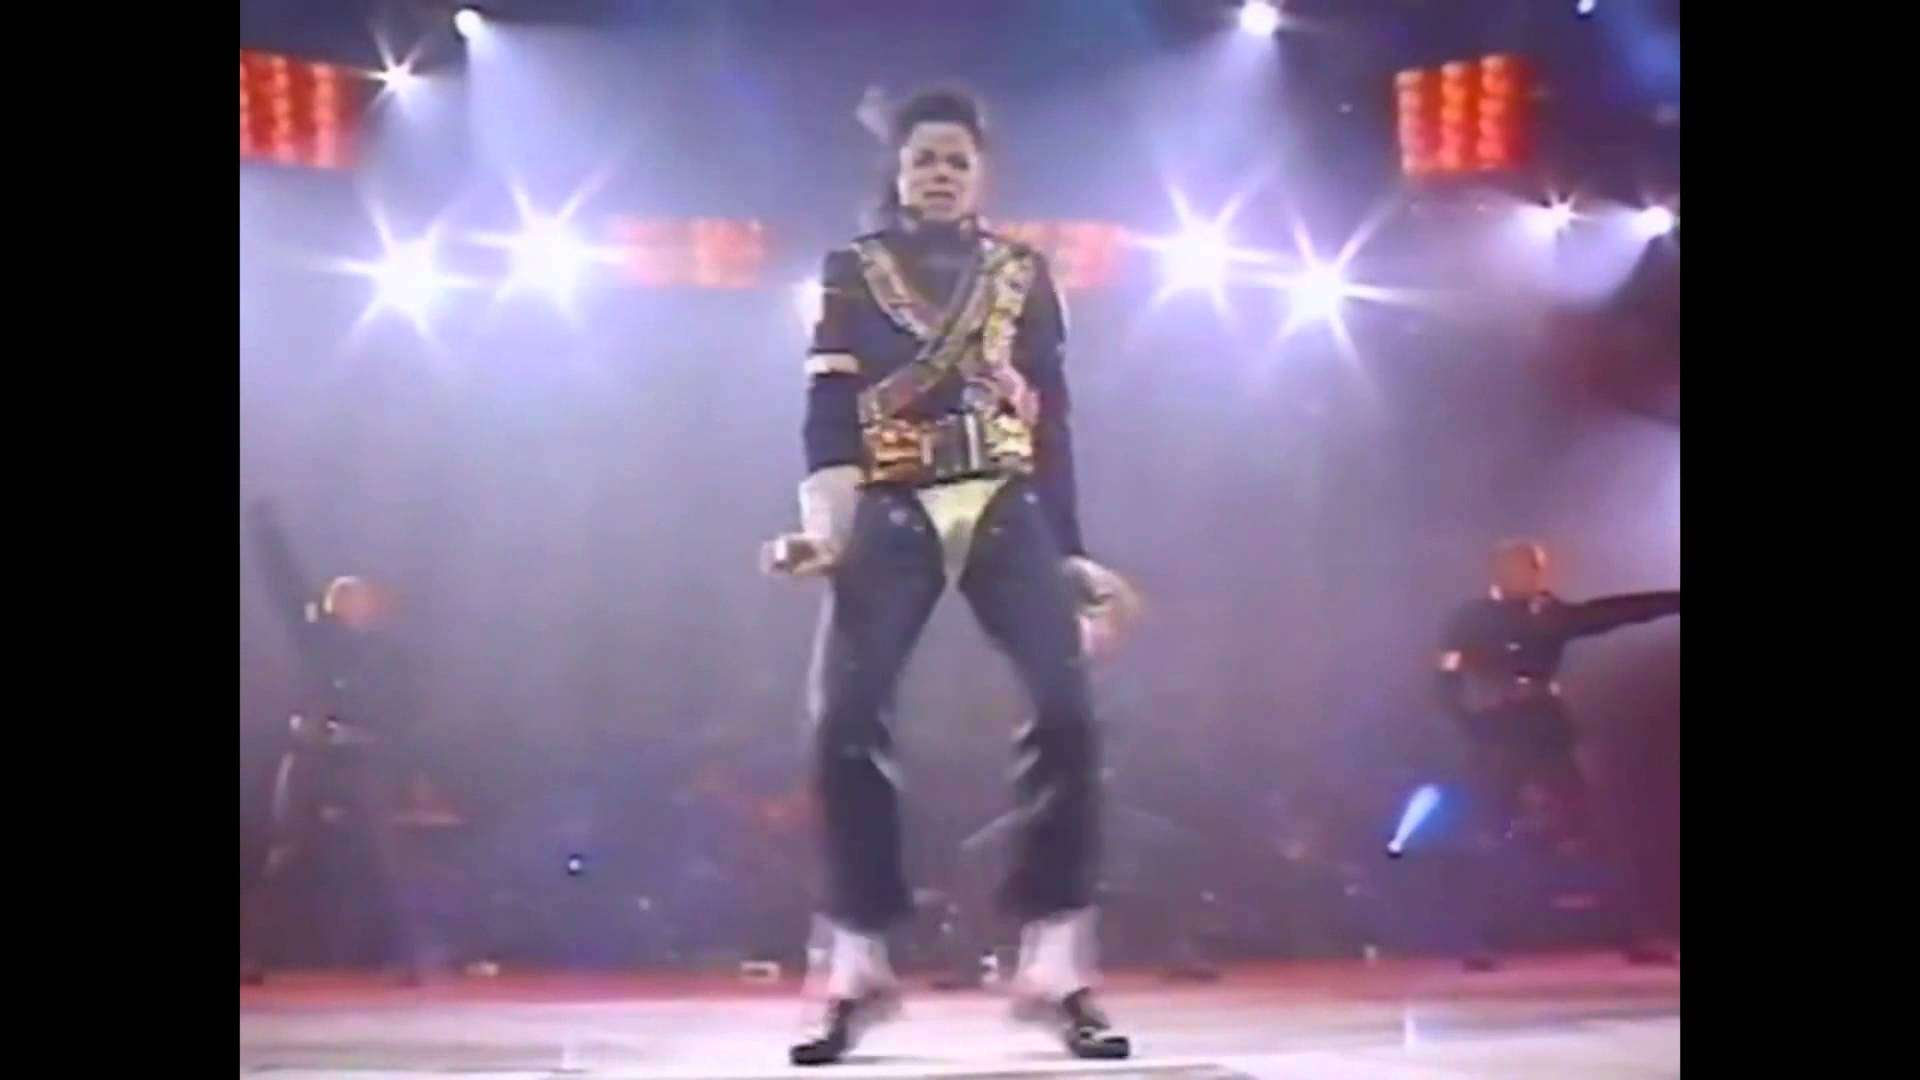 Michael Jackson Amazing Dance Moves On The Stage - YouTube